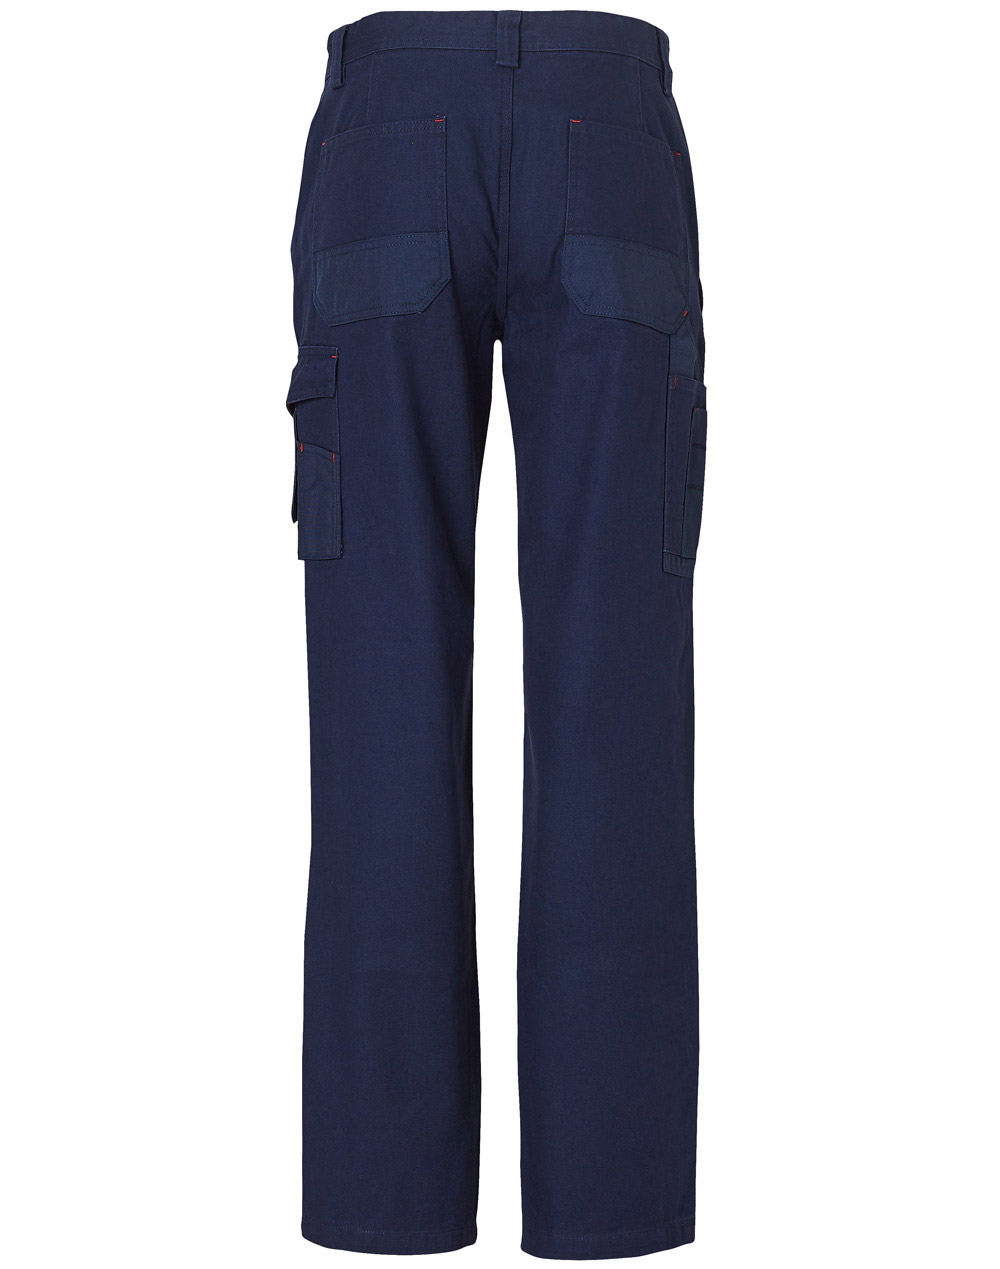 https://s3-ap-southeast-1.amazonaws.com/ws-imgs/WORKWEAR/WP10_Navy_Back.jpg